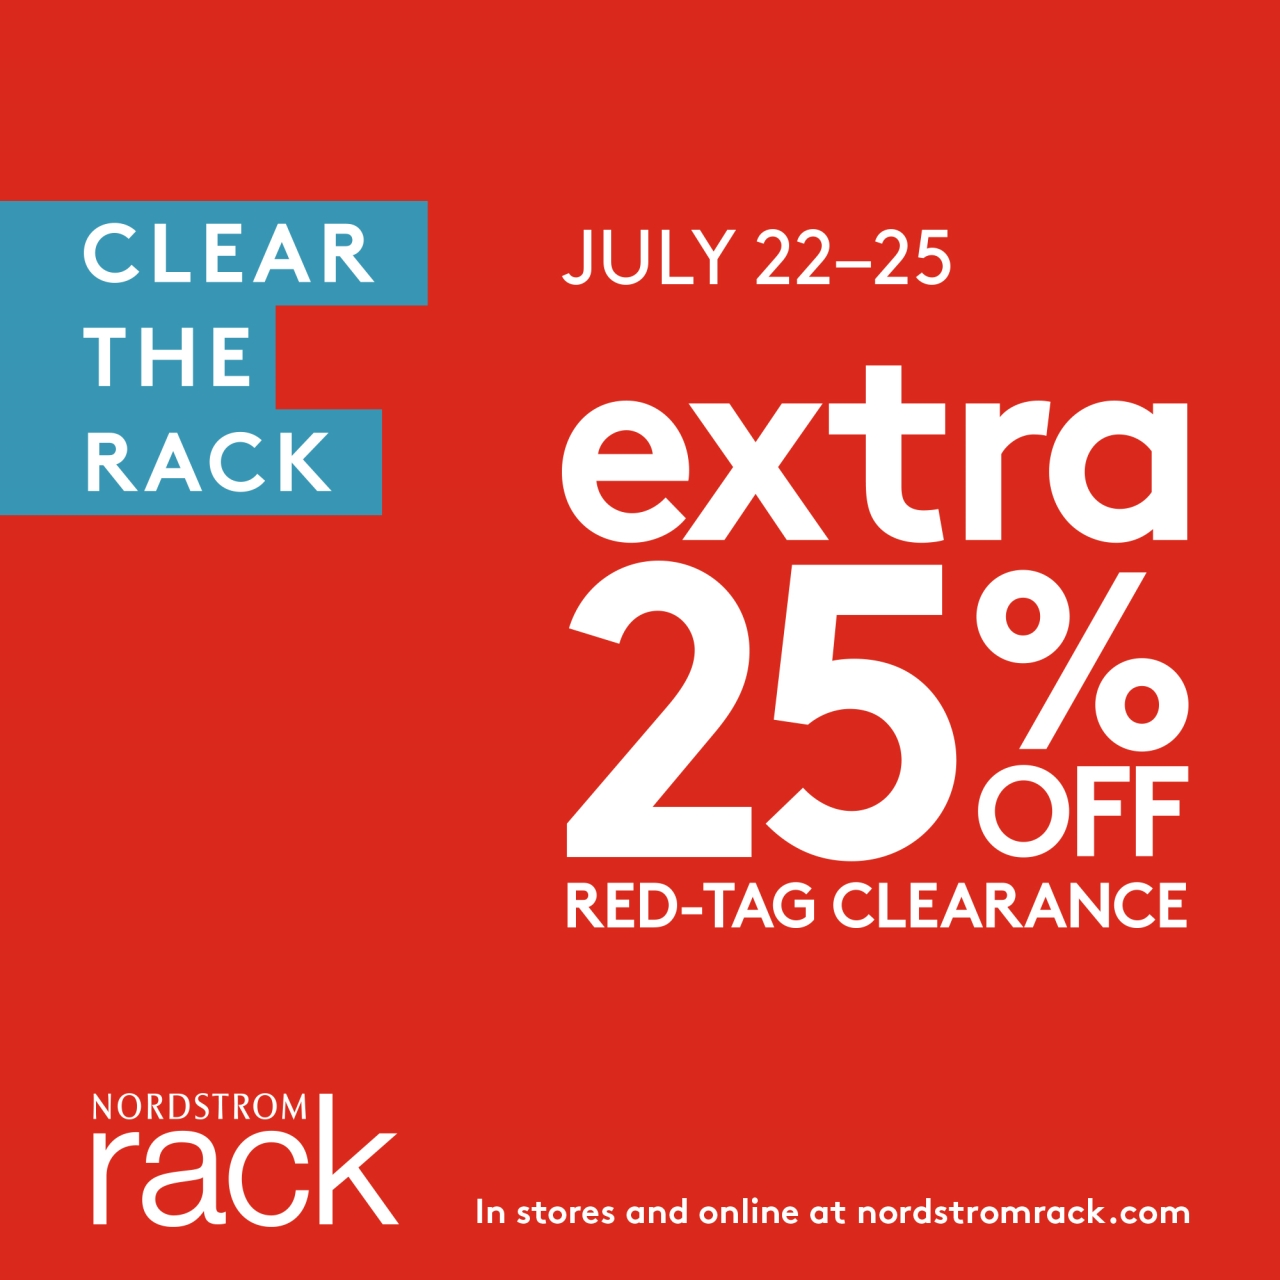 Nordstrom Rack Clear the Rack